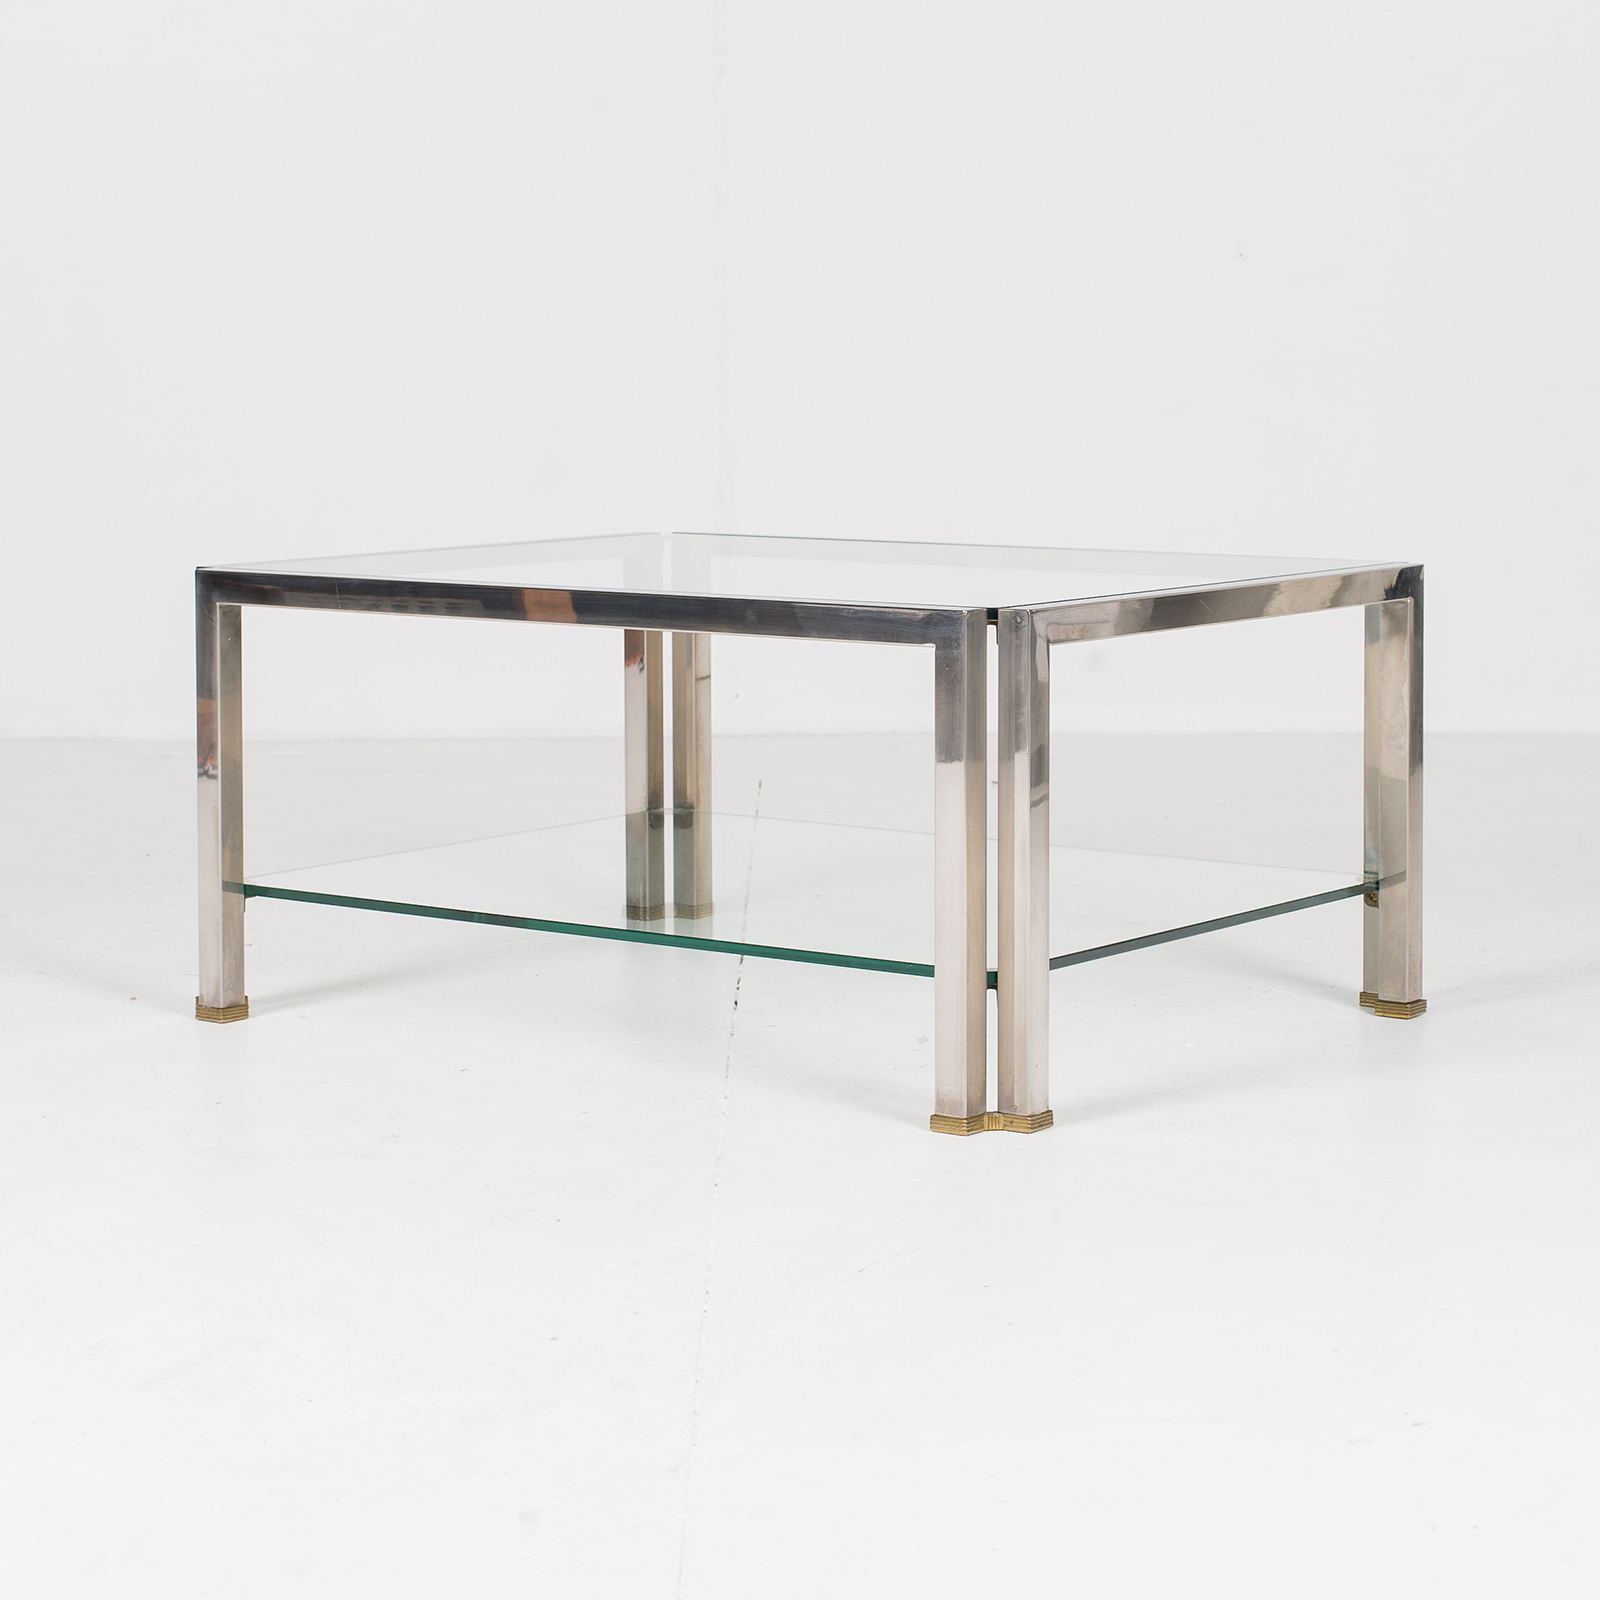 Coffee Table By Peter Ghyczy, 1970s, The Netherlands 2994